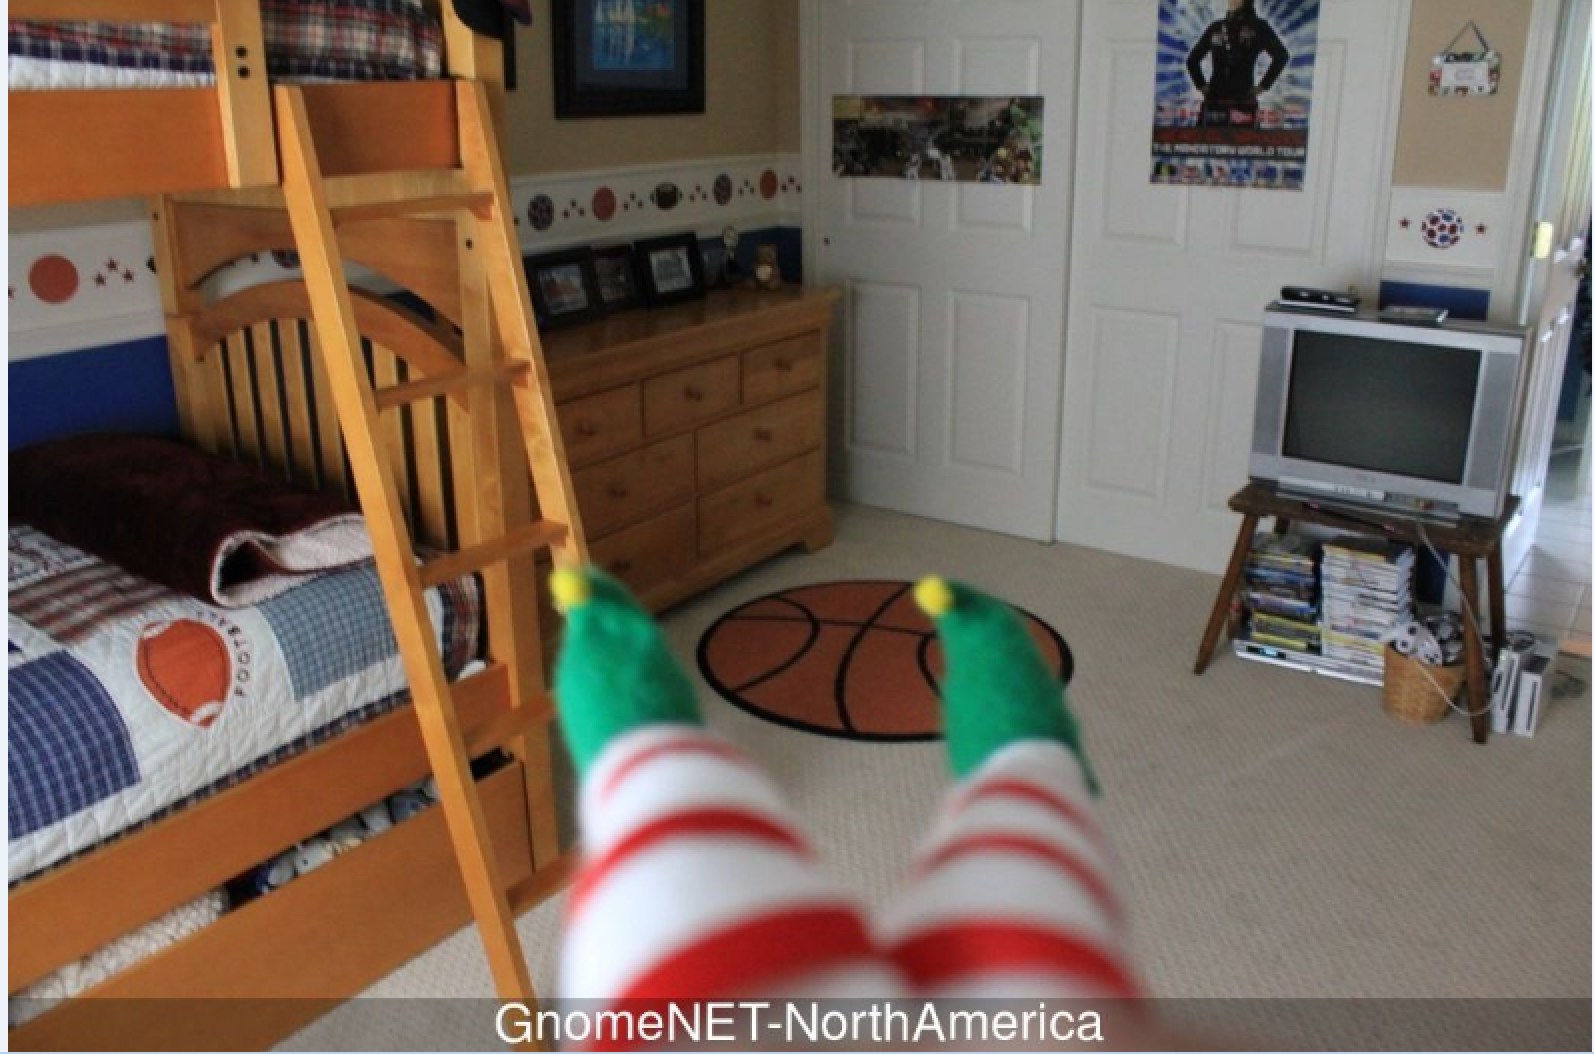 Gnome in the room